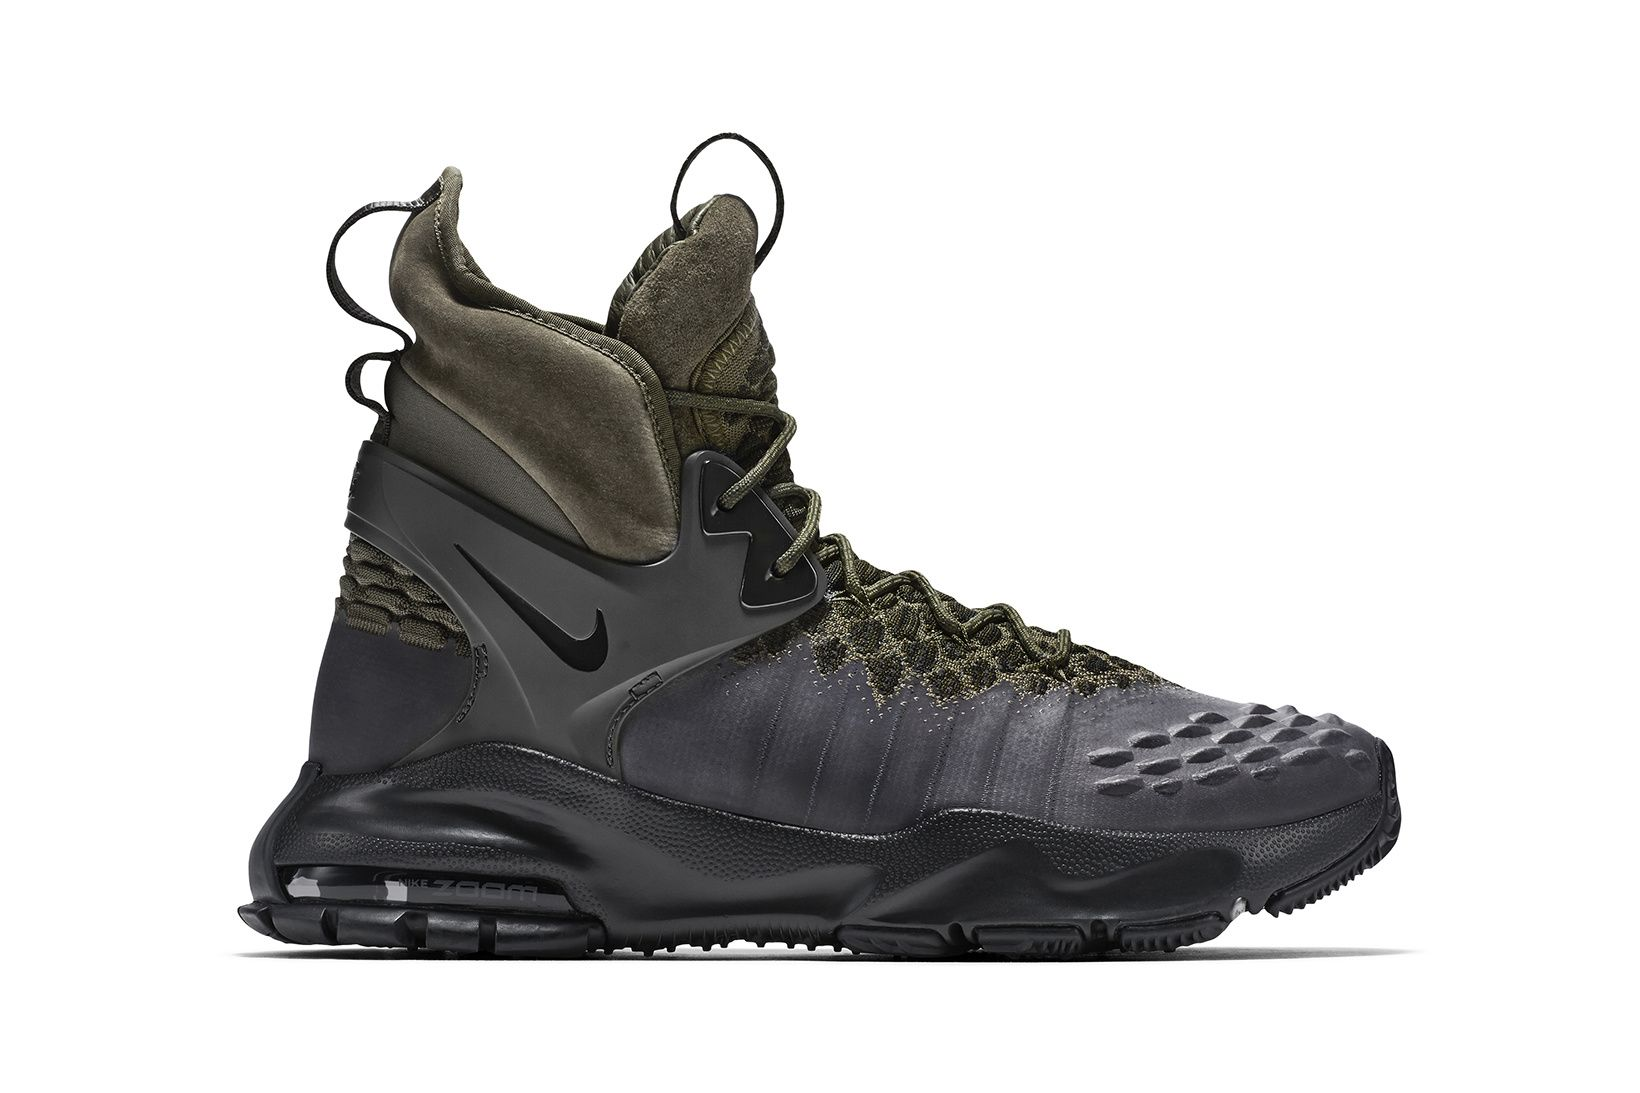 half off e75f9 f0d5d Nike Introduces the NikeLab ACG Air Zoom Tallac Flyknit Boot